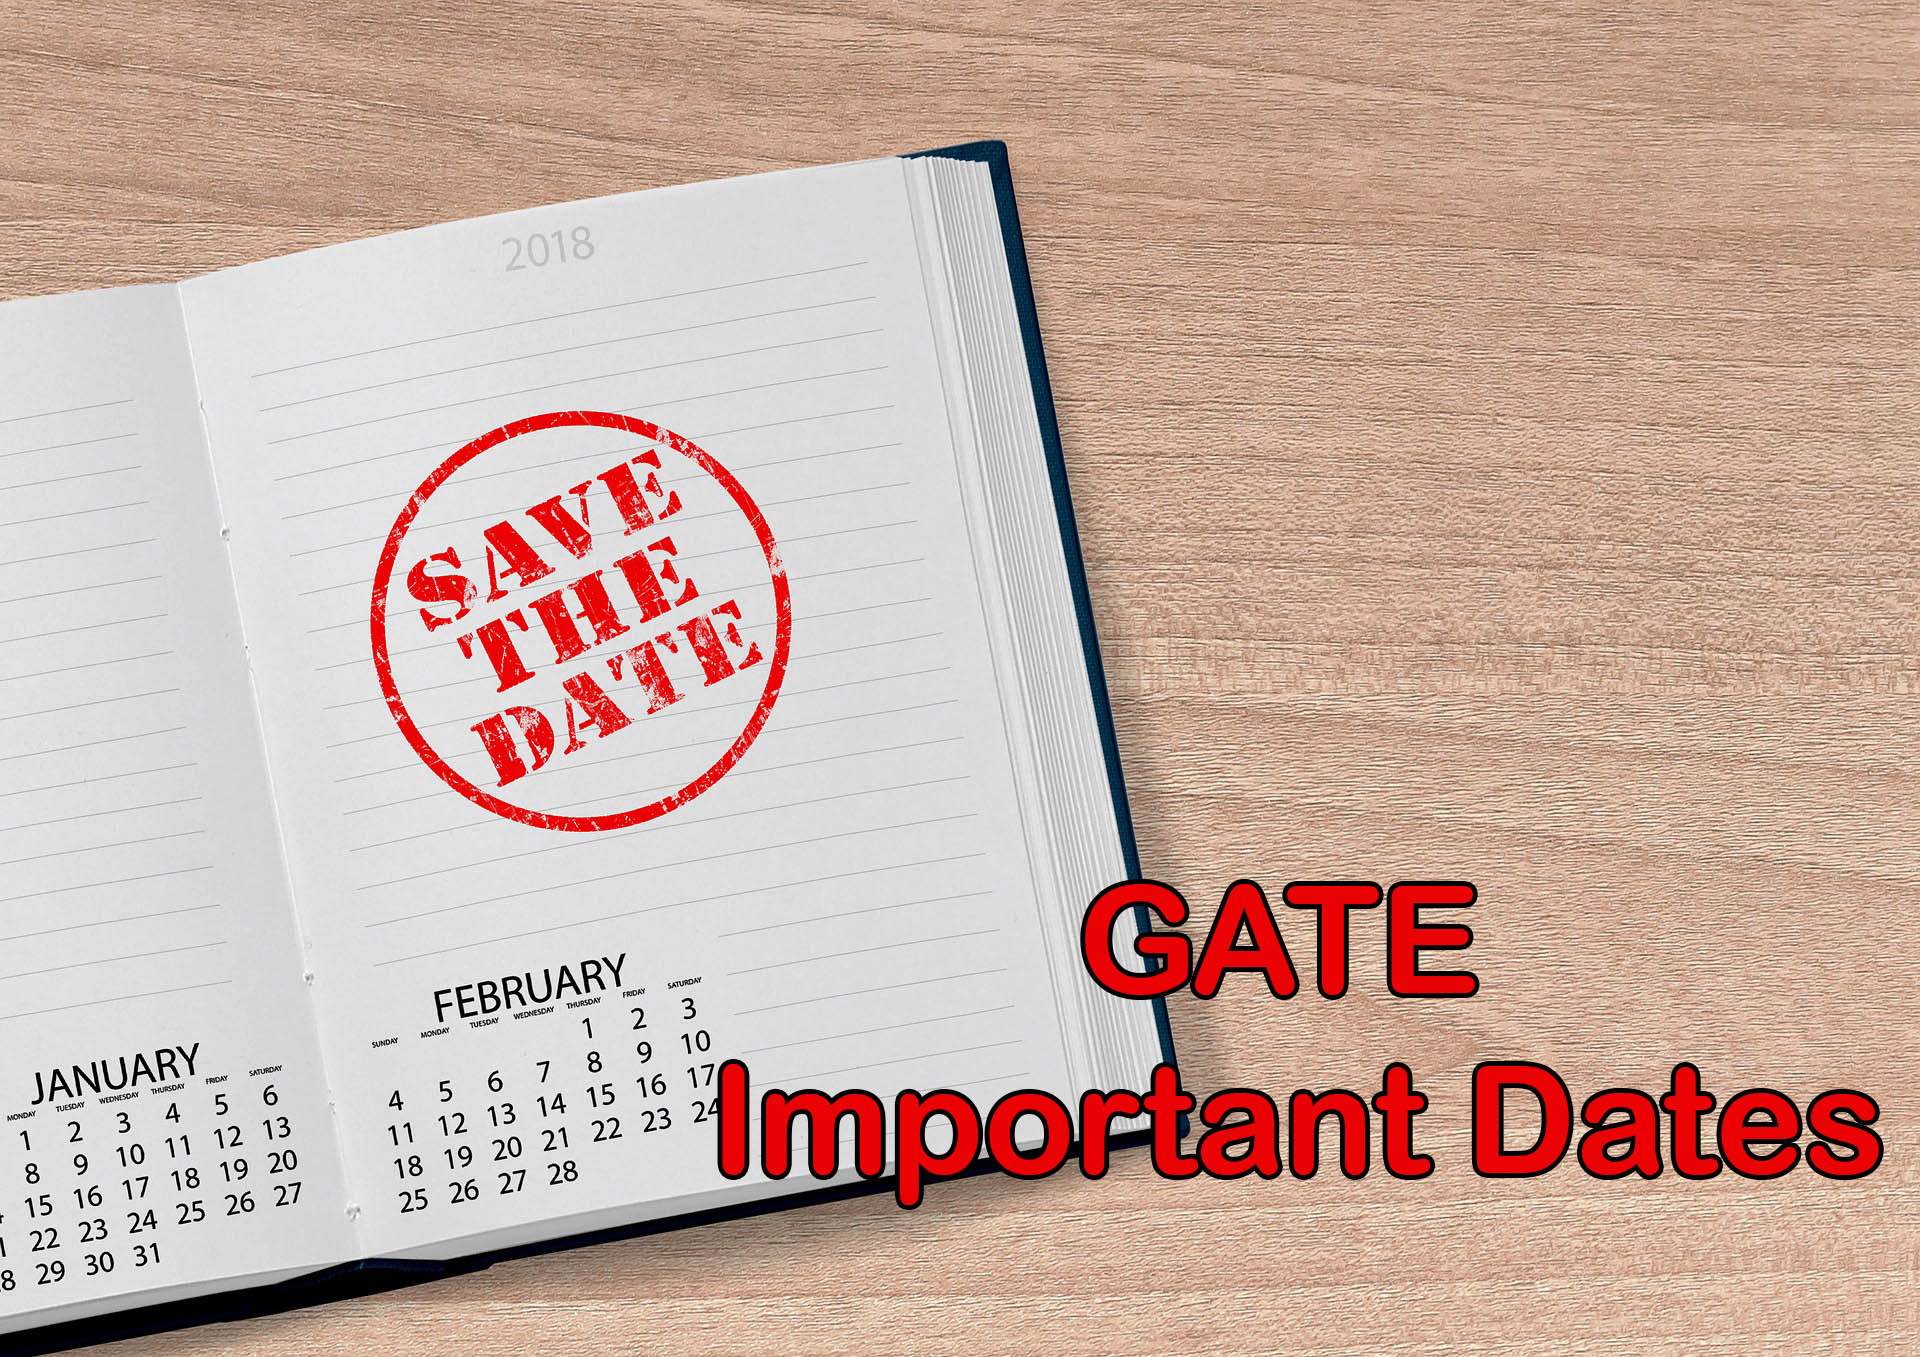 GATE Important Dates